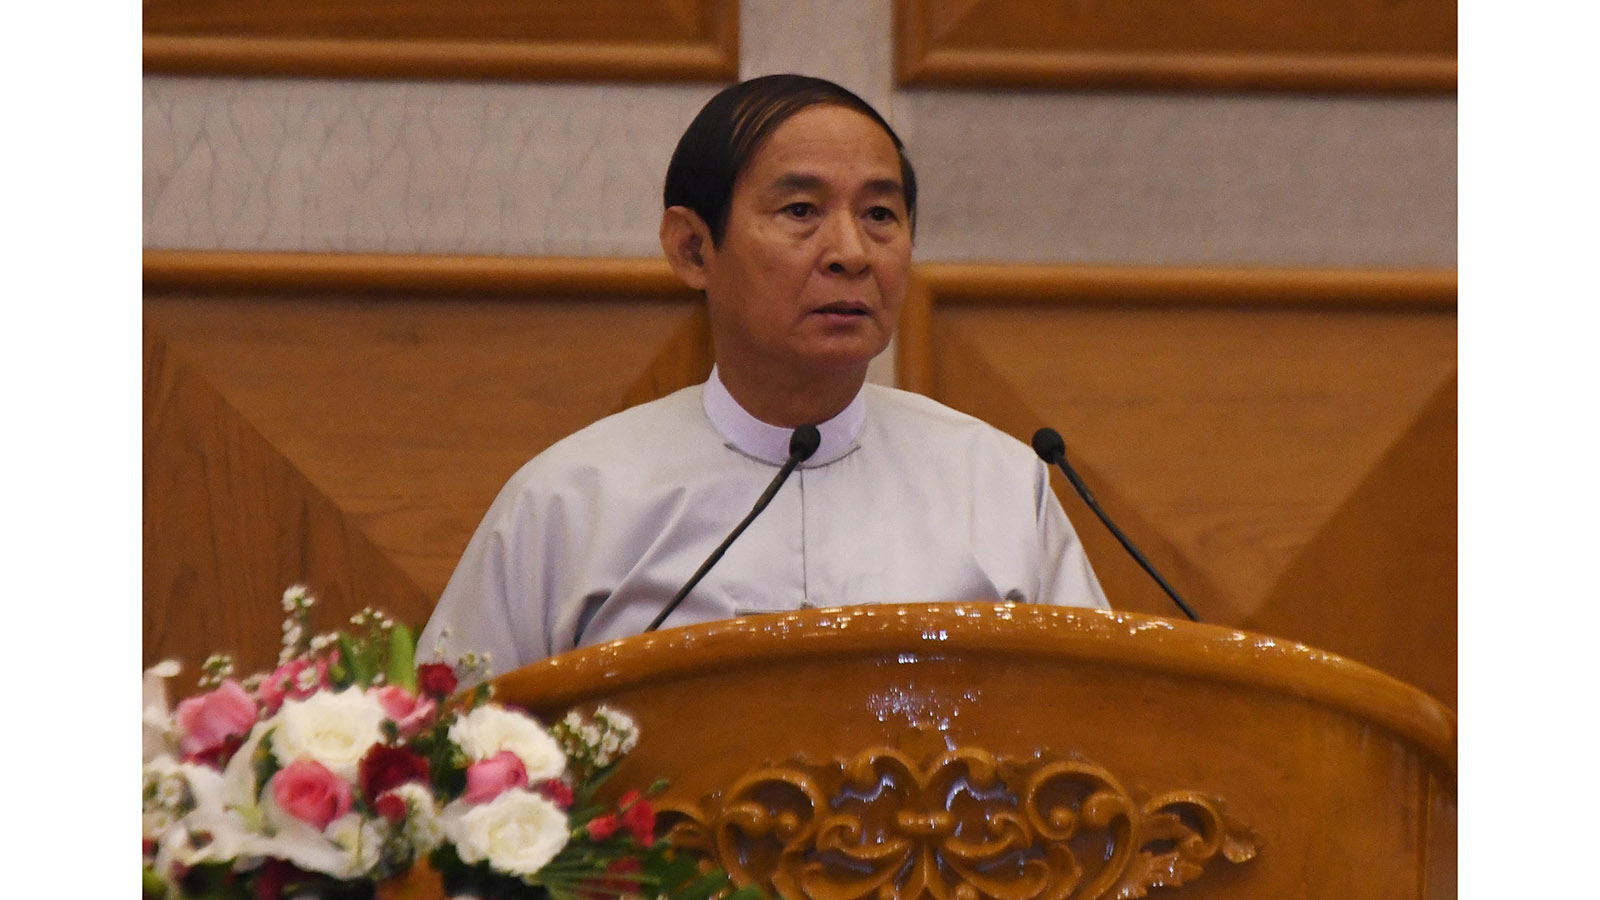 President U Win Myint delivers the speech at the ceremony to mark the 4th anniversary of Second Hluttaw in Nay Pyi Taw yesterday.Photo:MNA